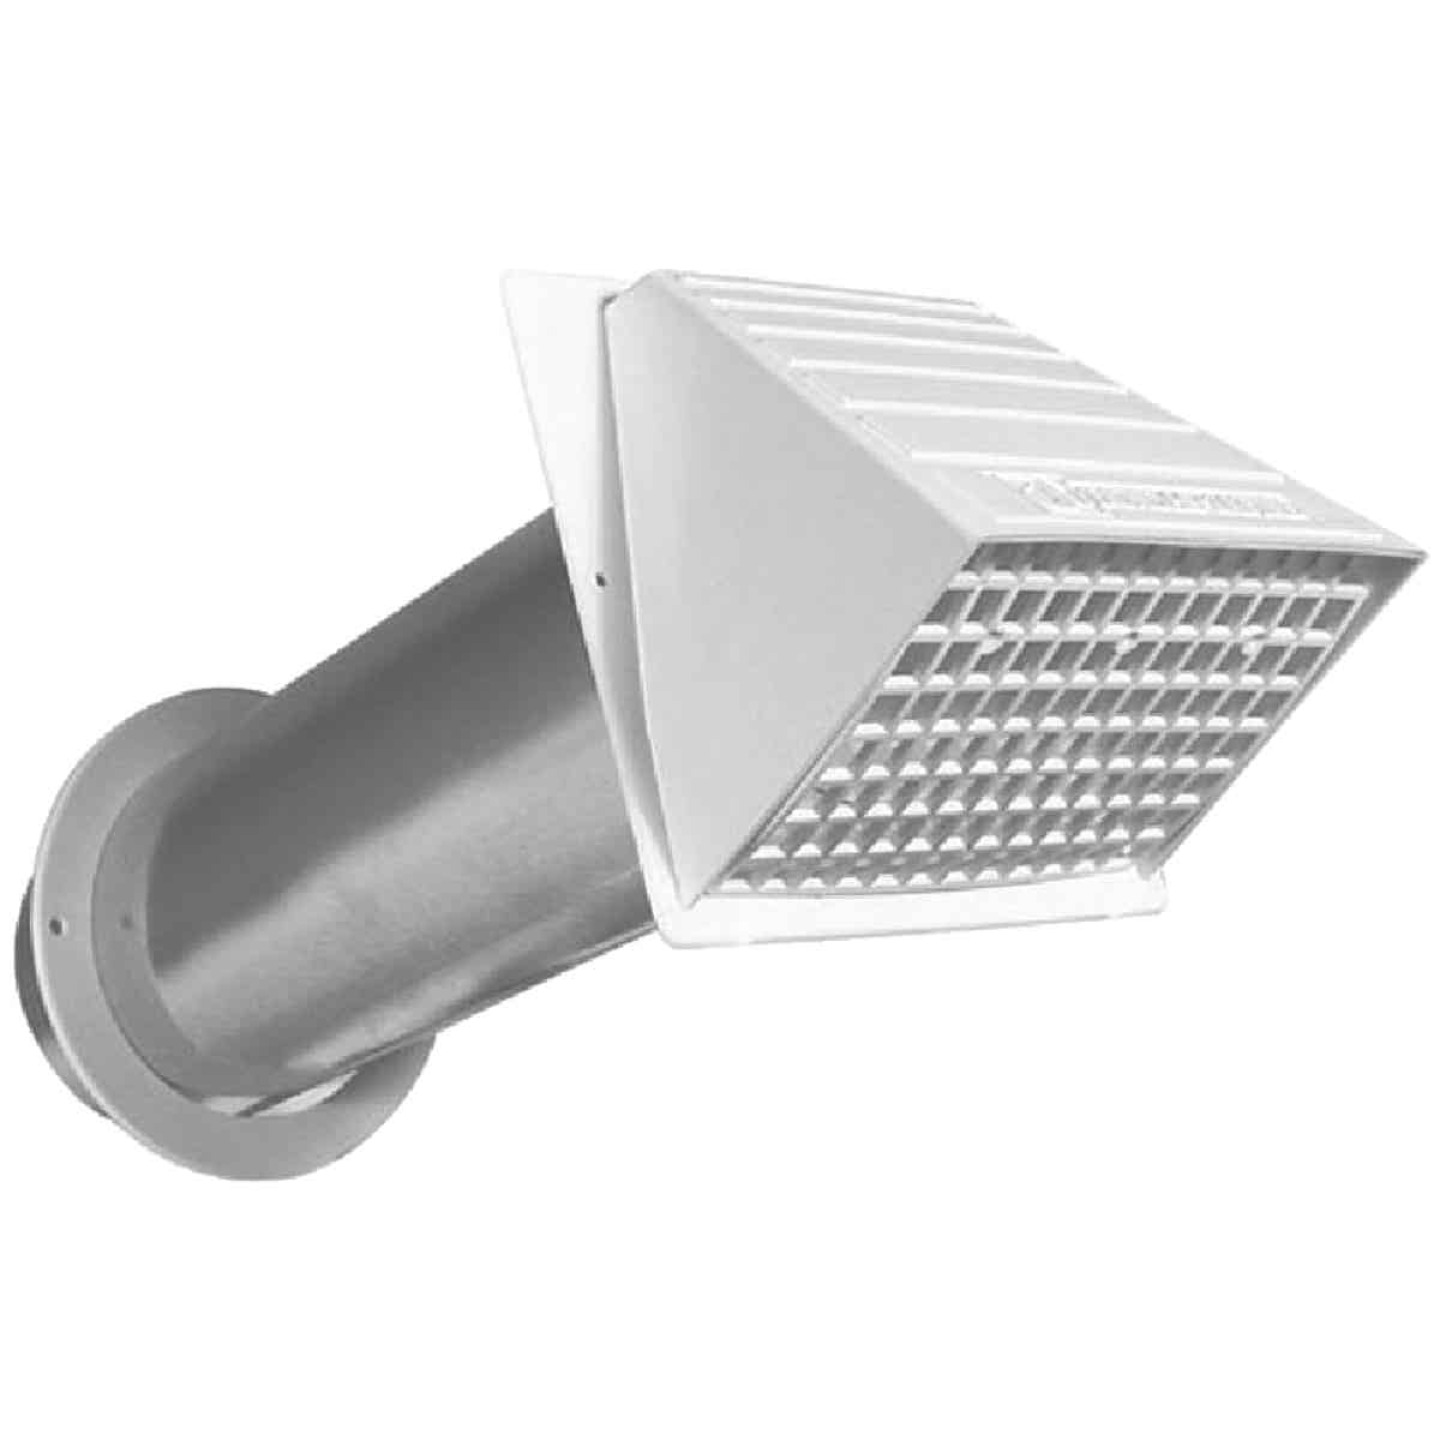 Dundas Jafine Maxi-Flow 4 In. White Plastic Dryer Vent Hood Image 1